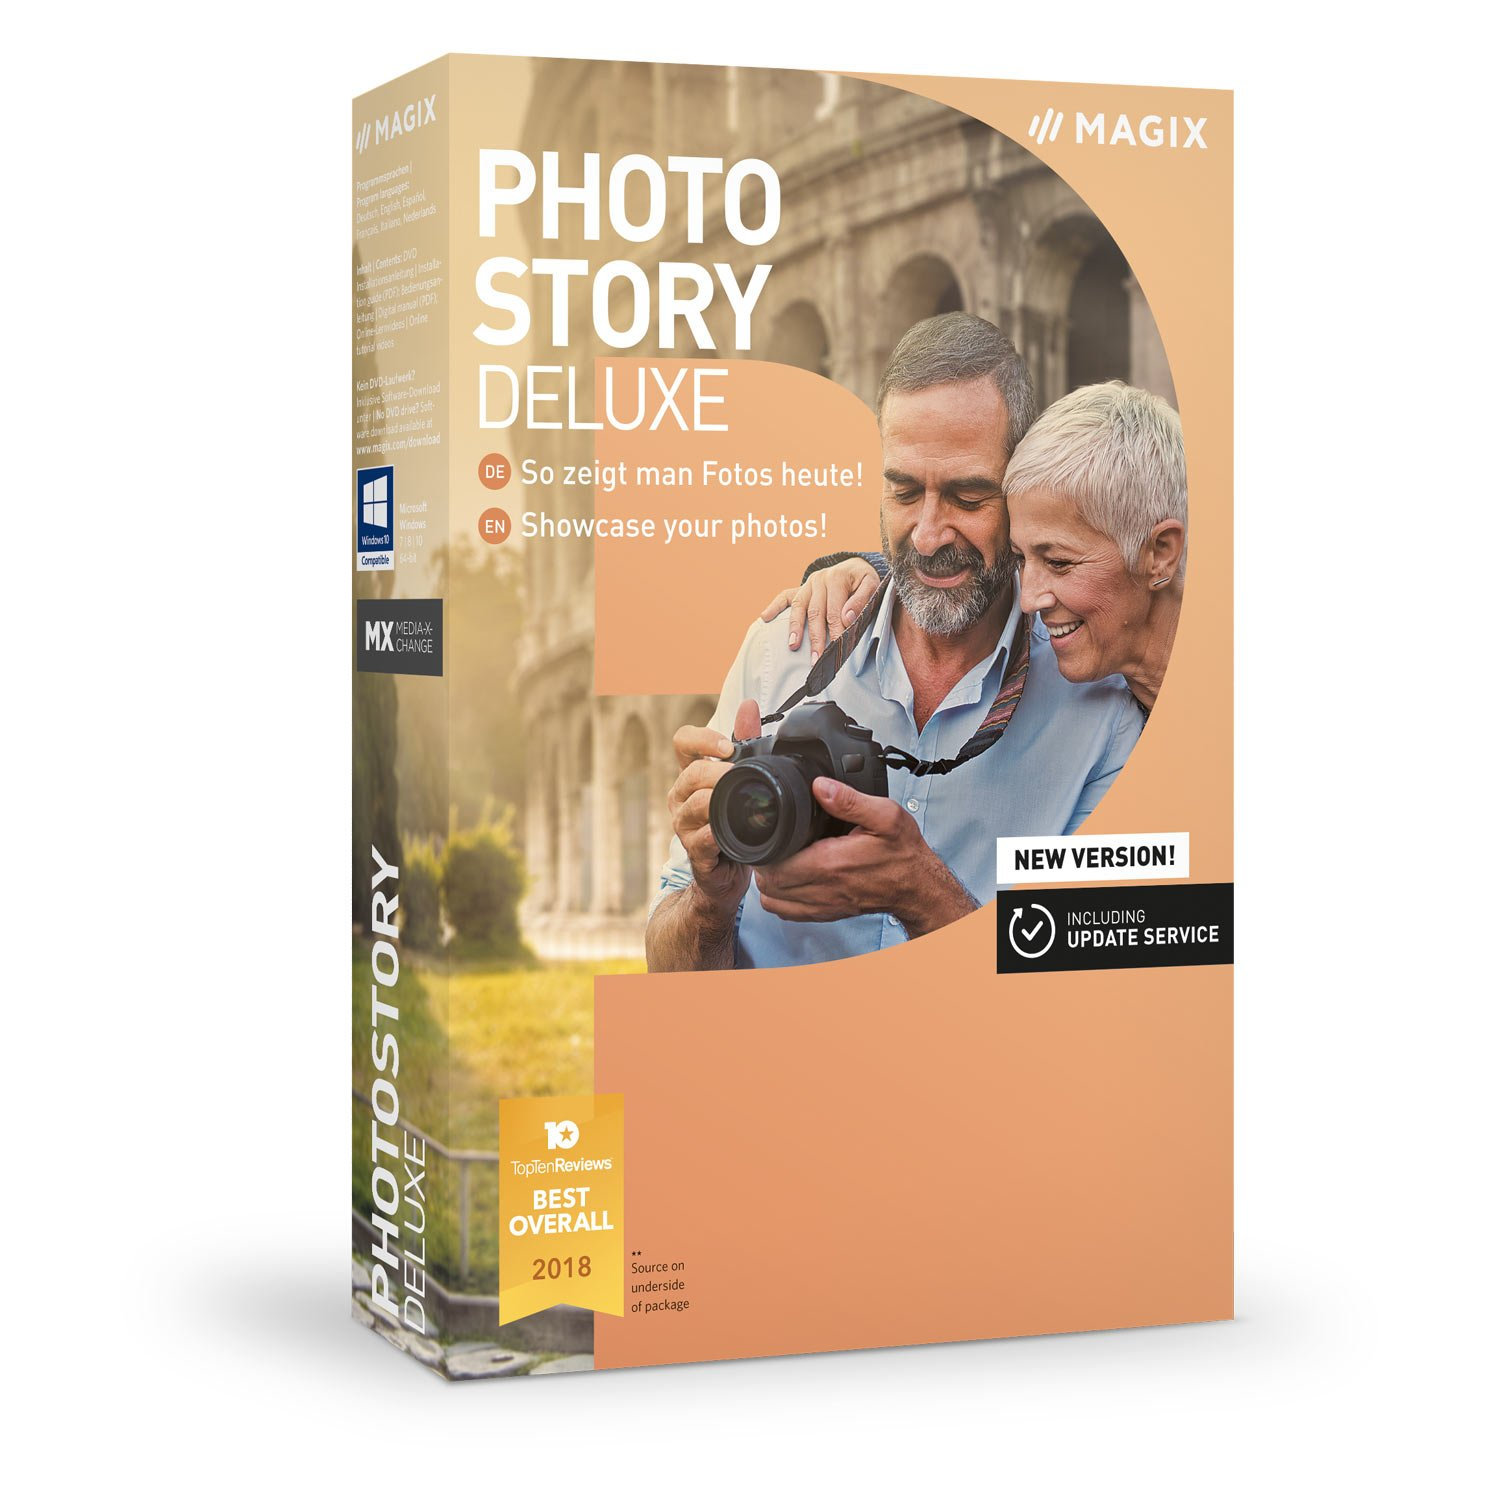 MAGIX Photostory Deluxe - Version 2019 - Create Slideshows the Easy Way Us Magix Entertainment 639191017612